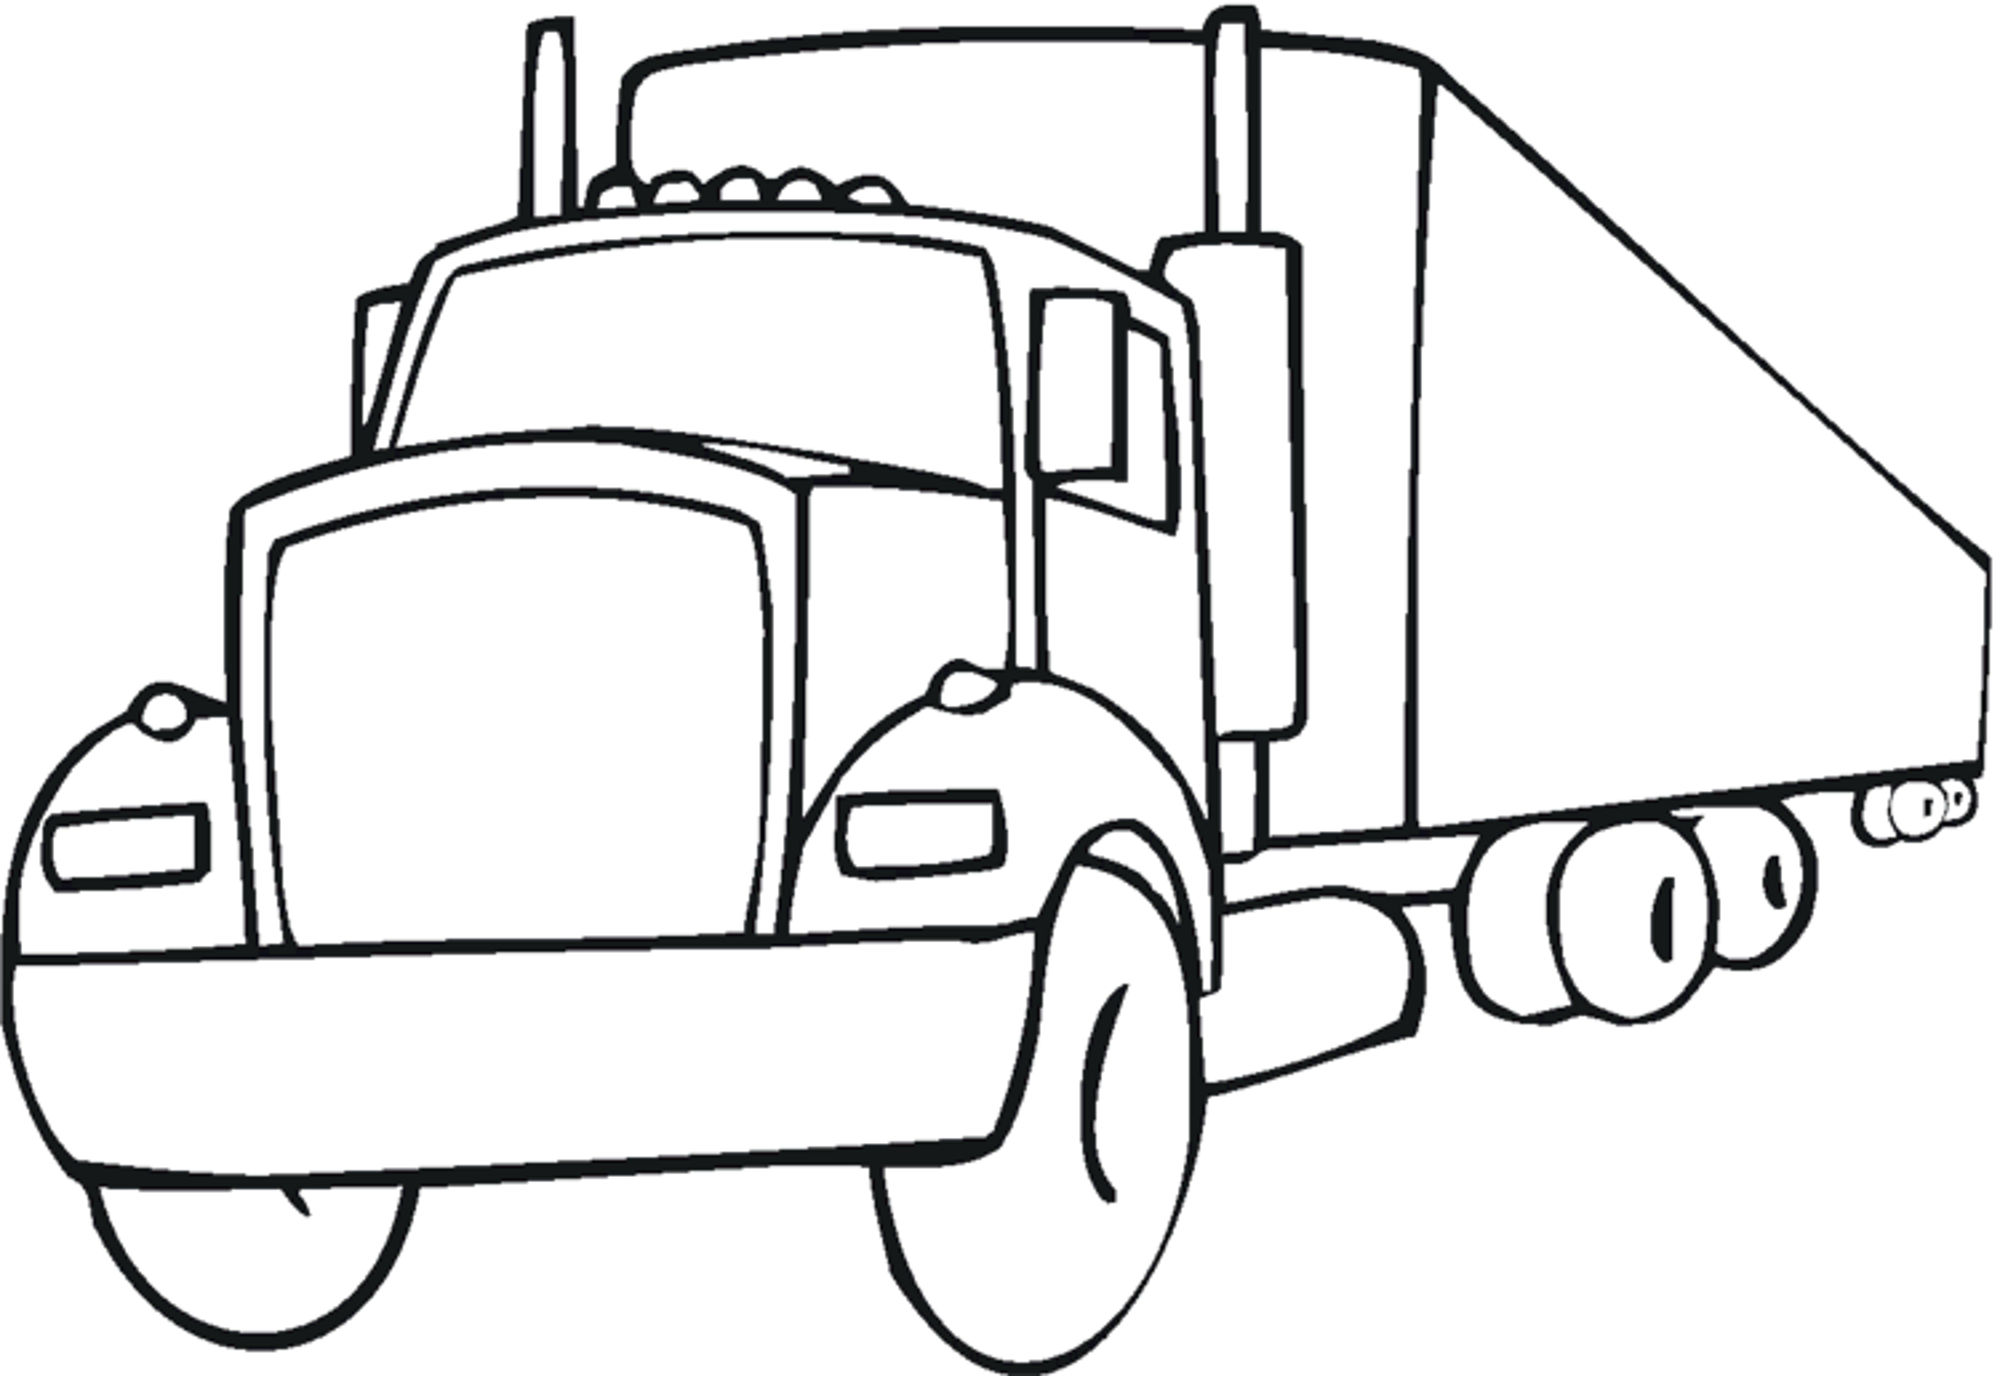 trucks and trains coloring pages-#14